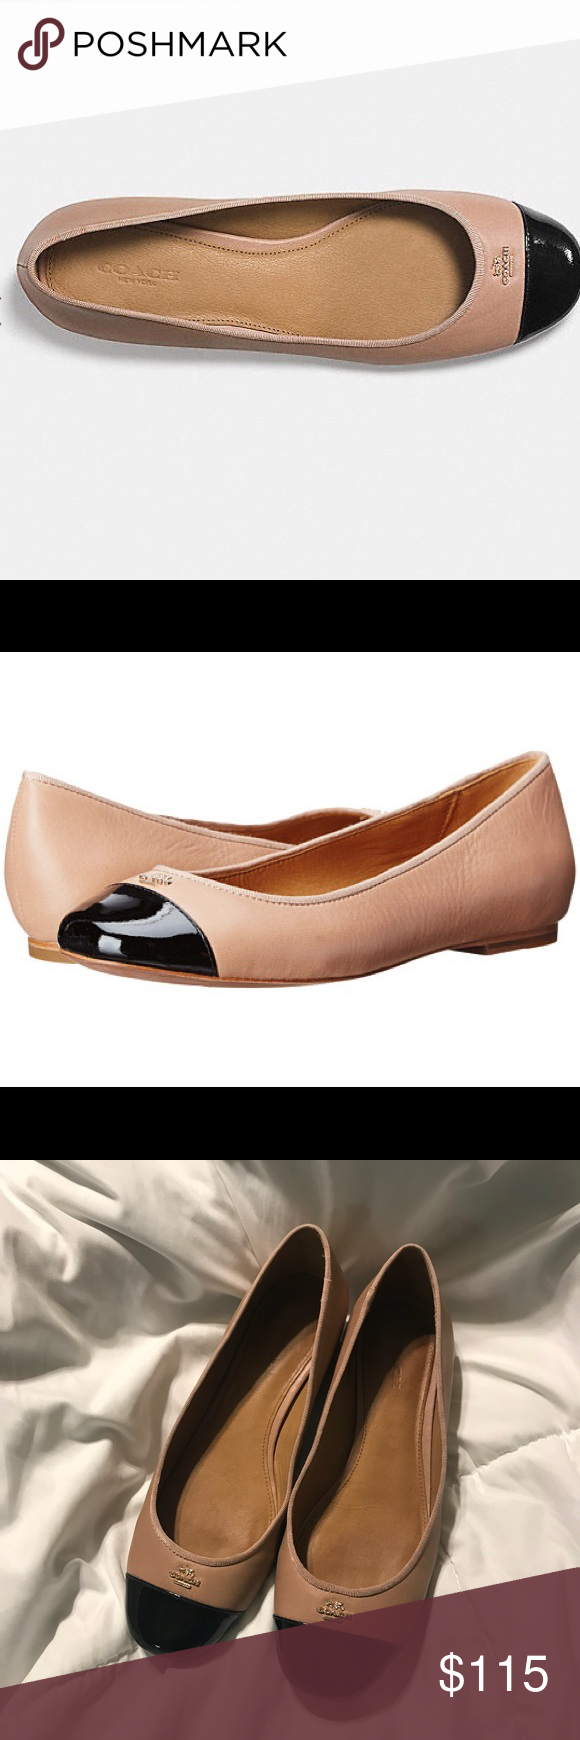 322dbbef2 Coach Samantha Cap Toe Flats - Black / Blush Worn twice! Super cute Coach  flats. Great neutral colors that go with everything.